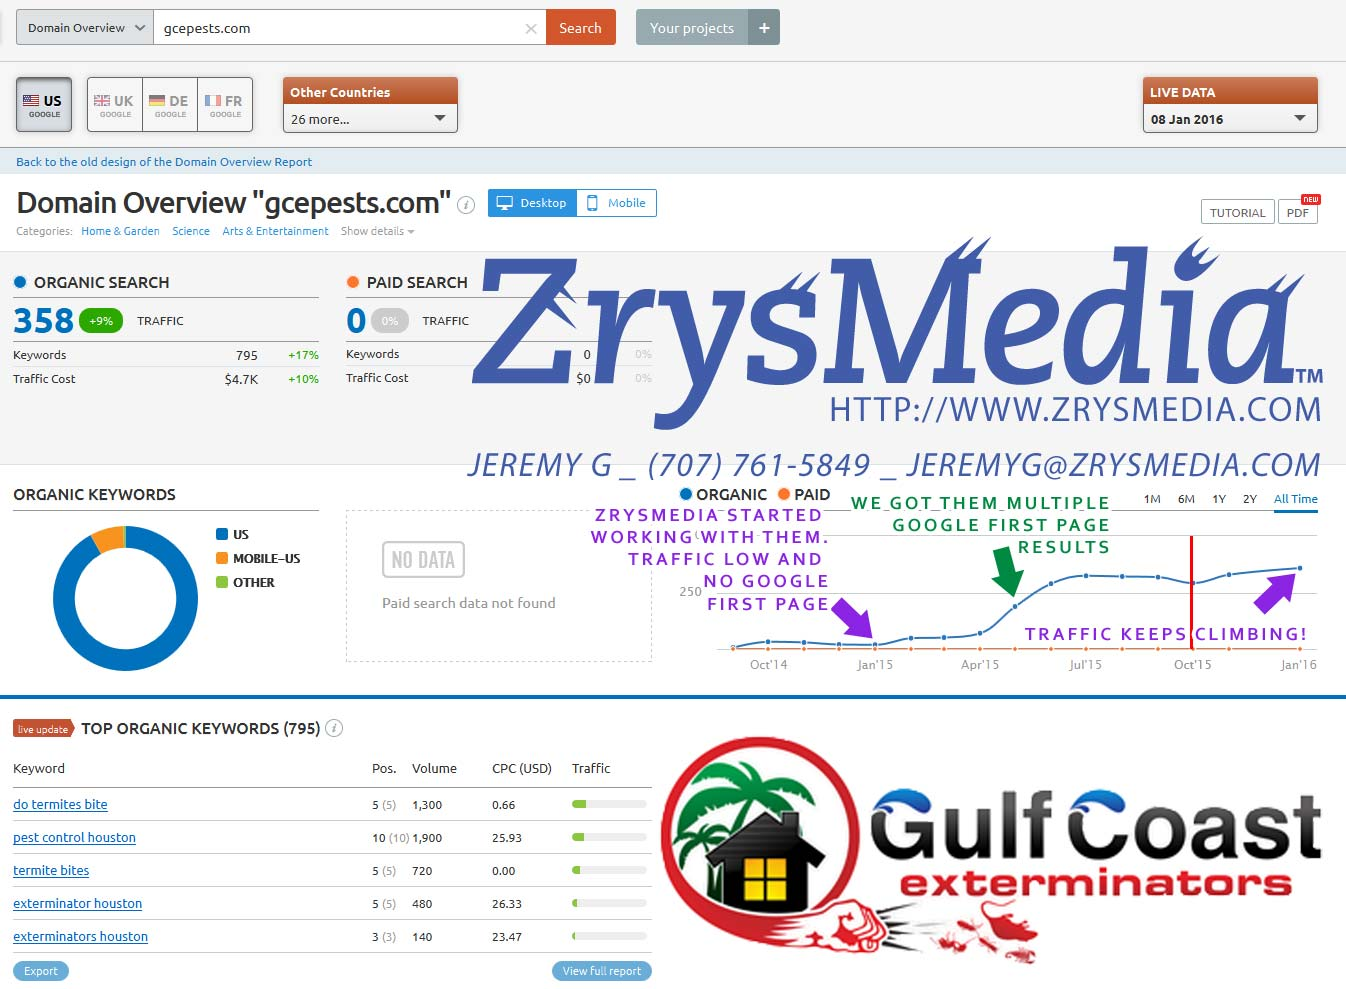 Gulf Coast Exterminators increased website ranking results from working with ZrysMedia within a year